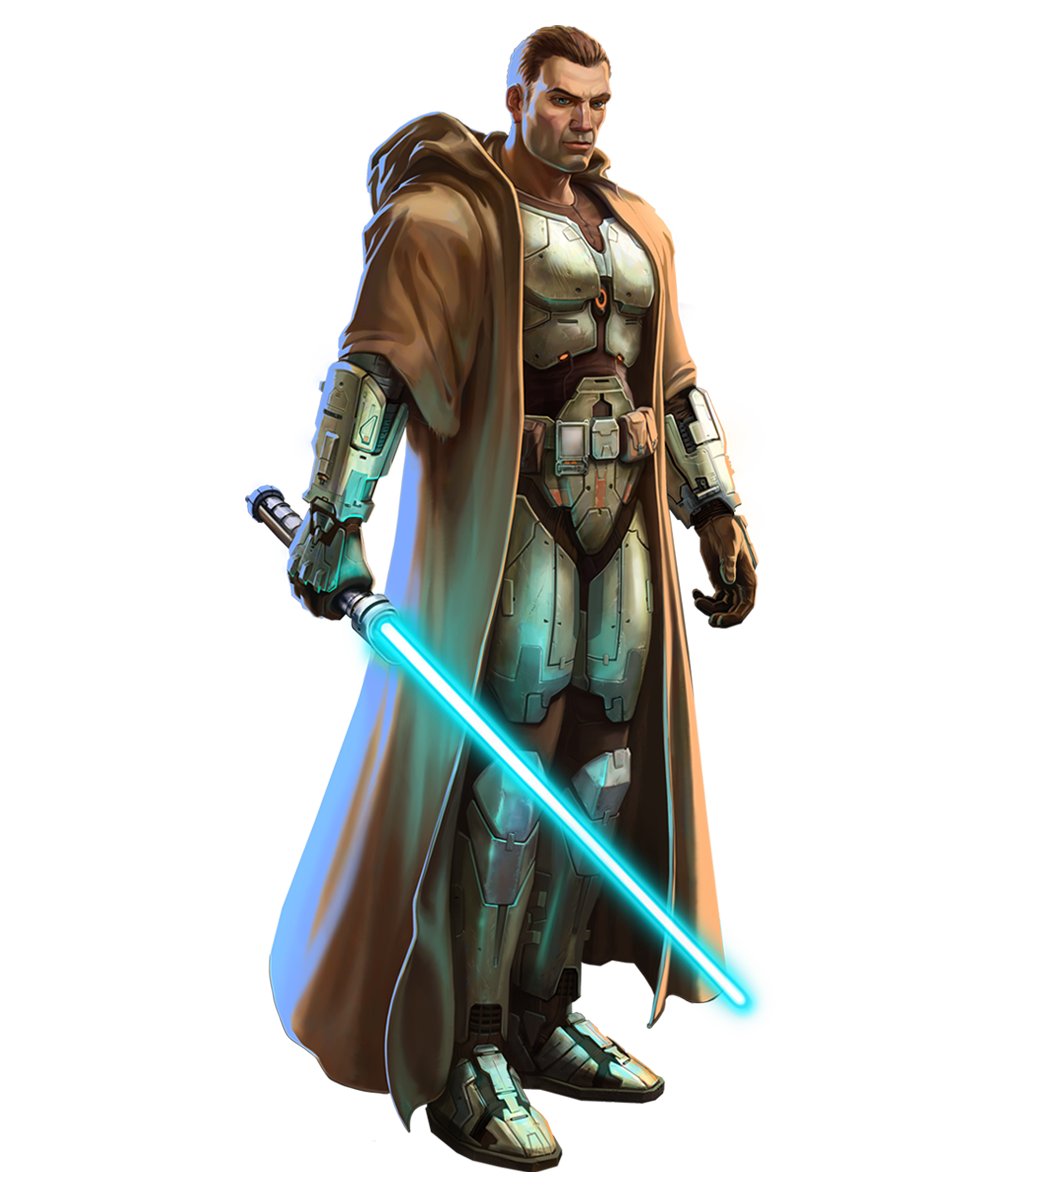 Caballero jedi swtor wiki fandom powered by wikia for Who is a consular